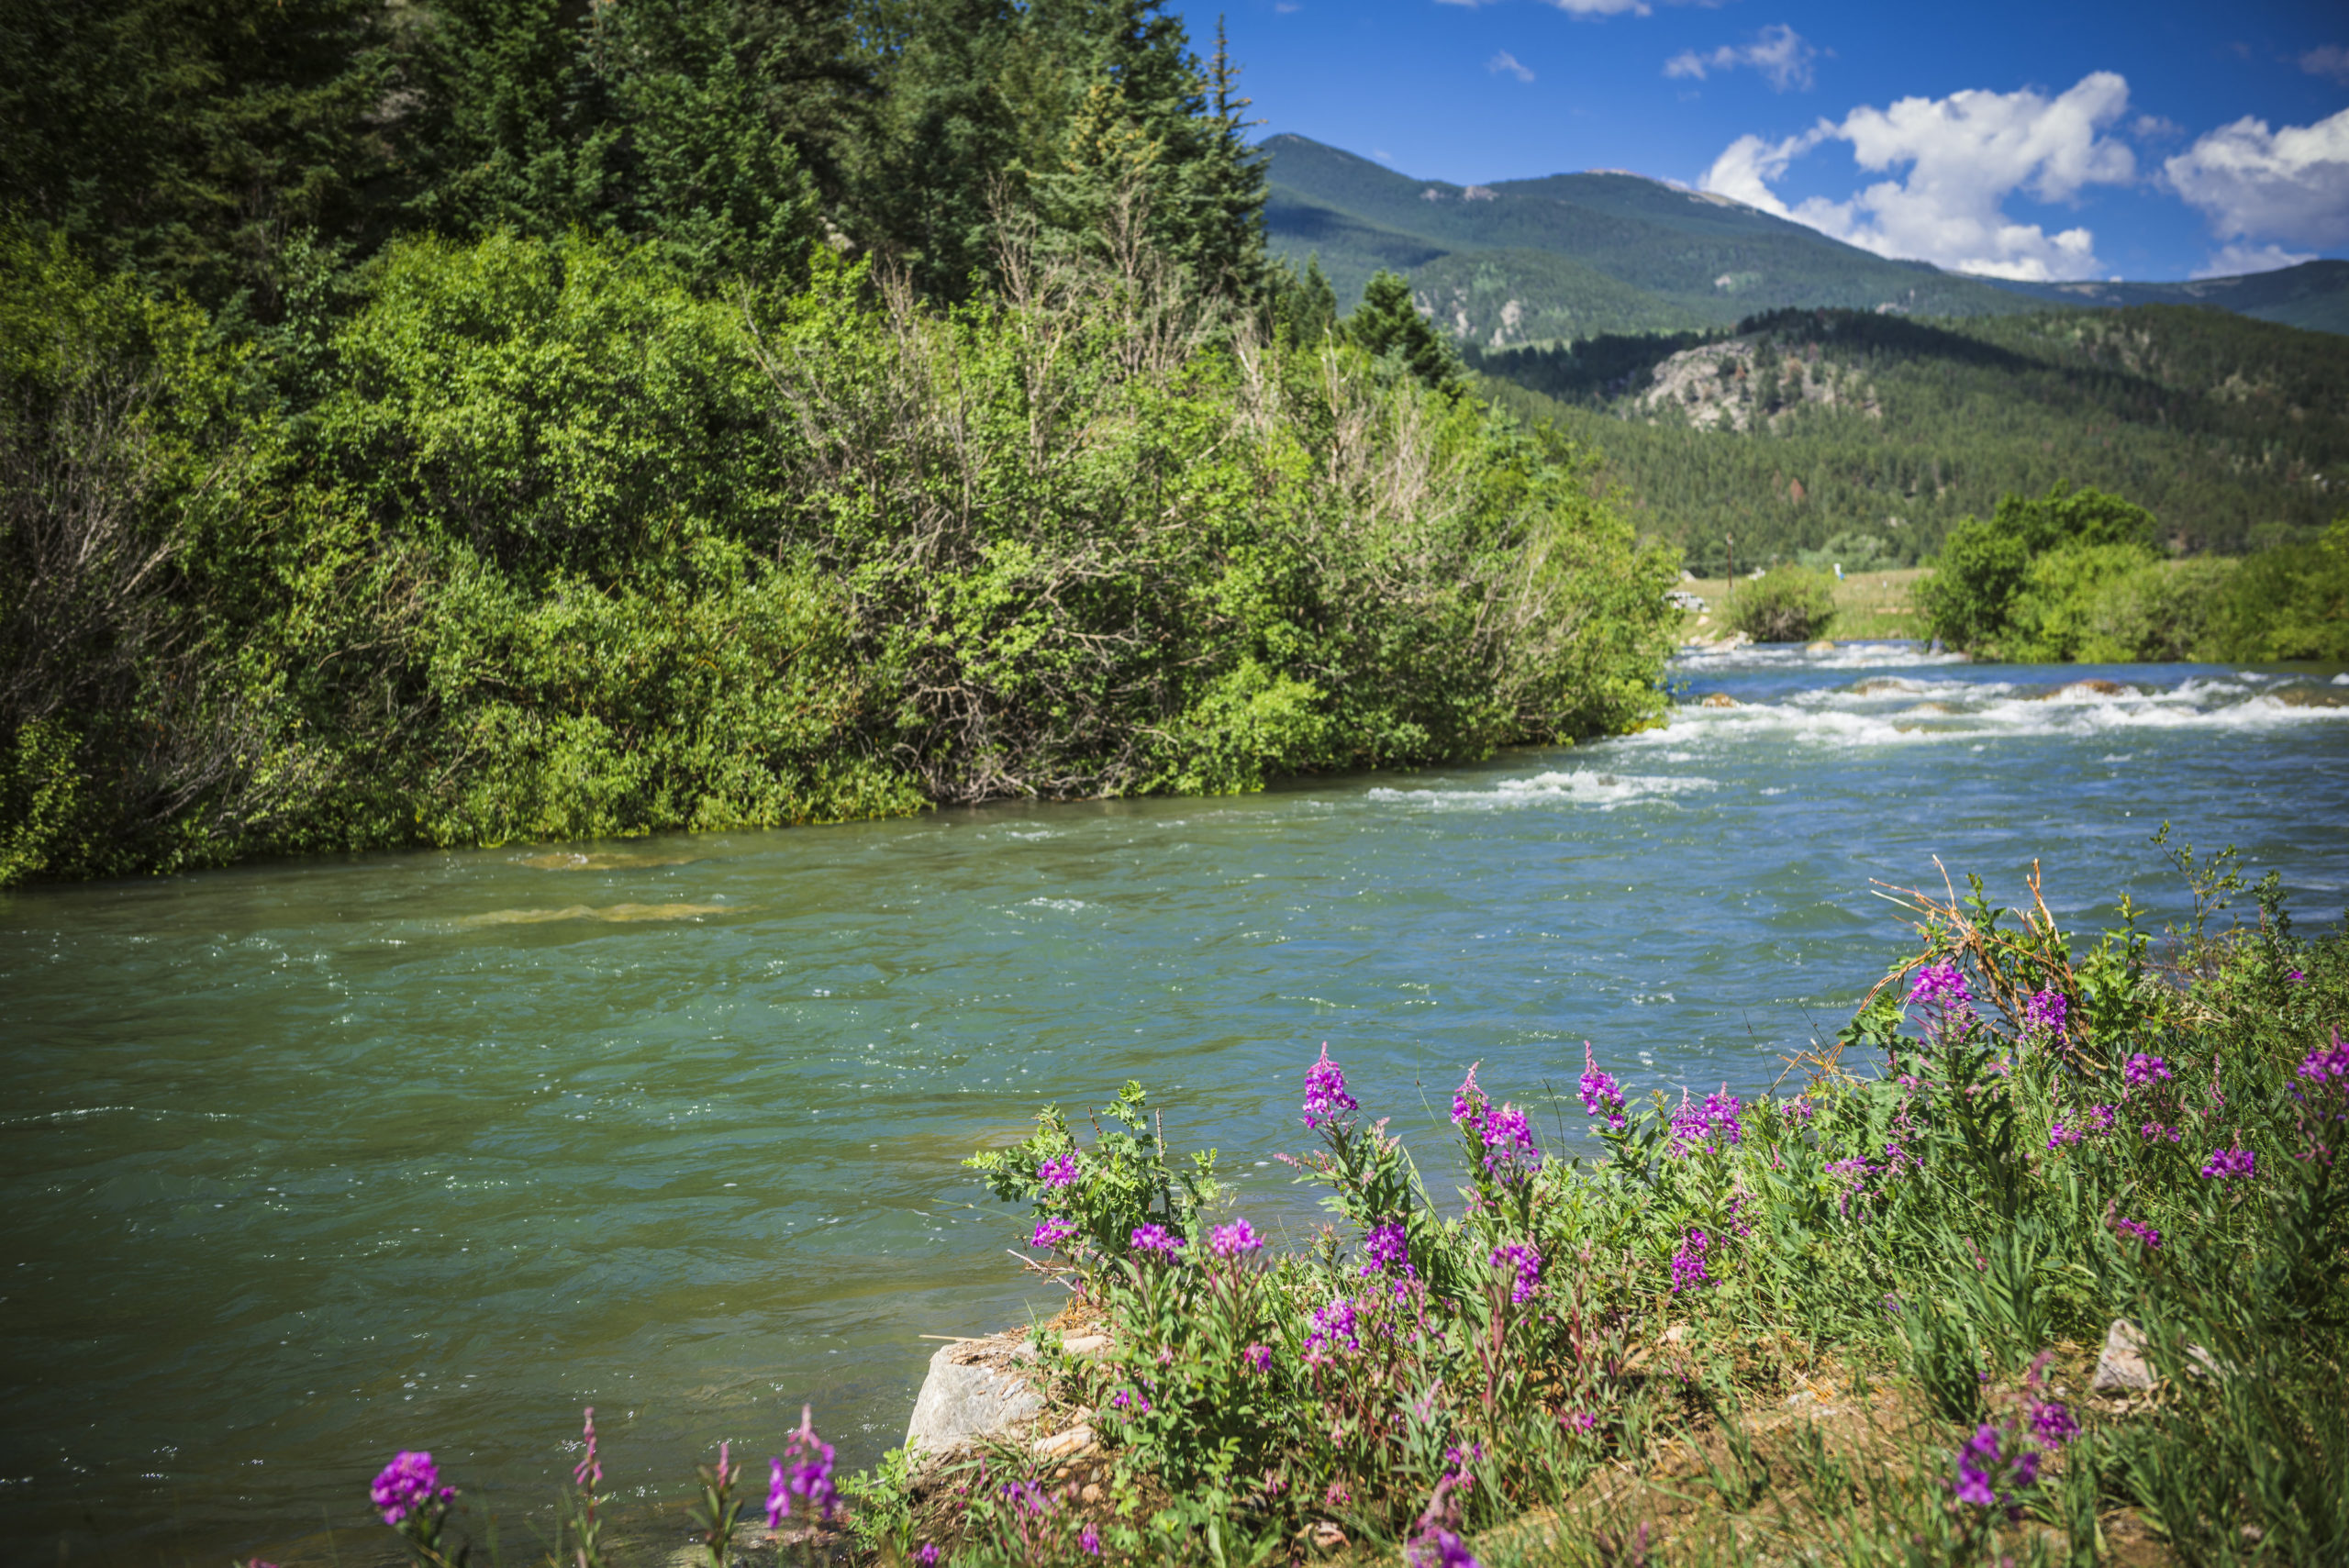 Gorgeous scenery from guided fly fishing on the North Fork of the South Platte.